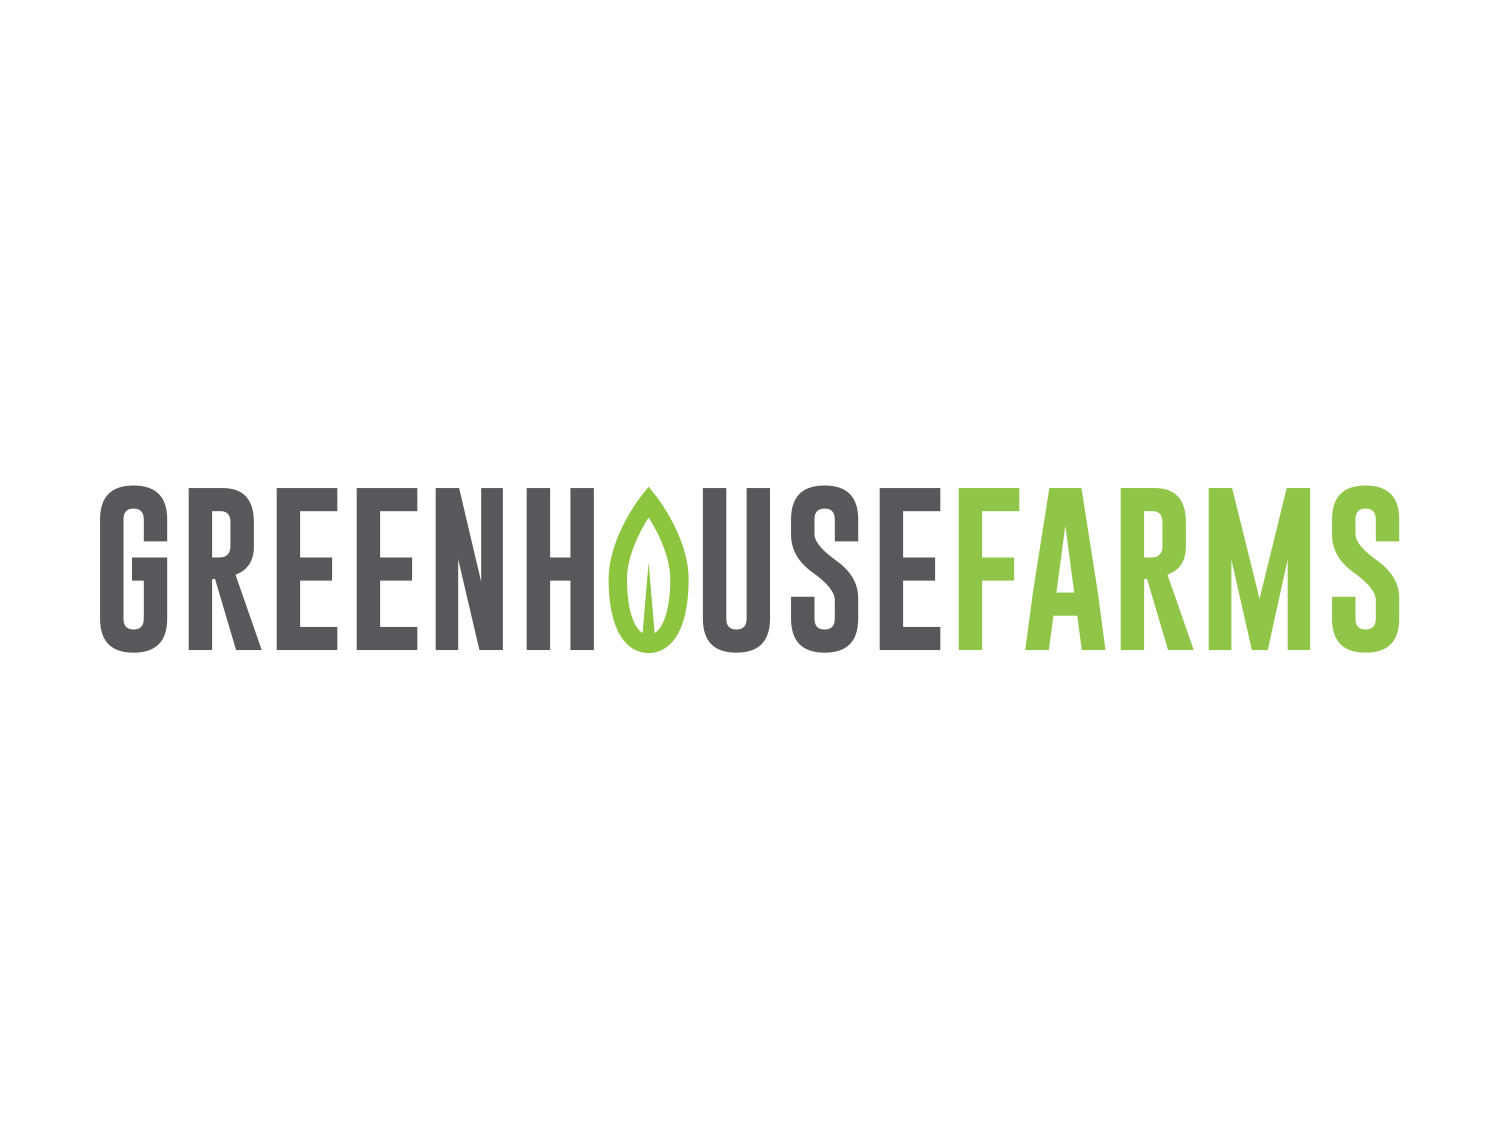 3 Greenhouse Farms Branding.jpg